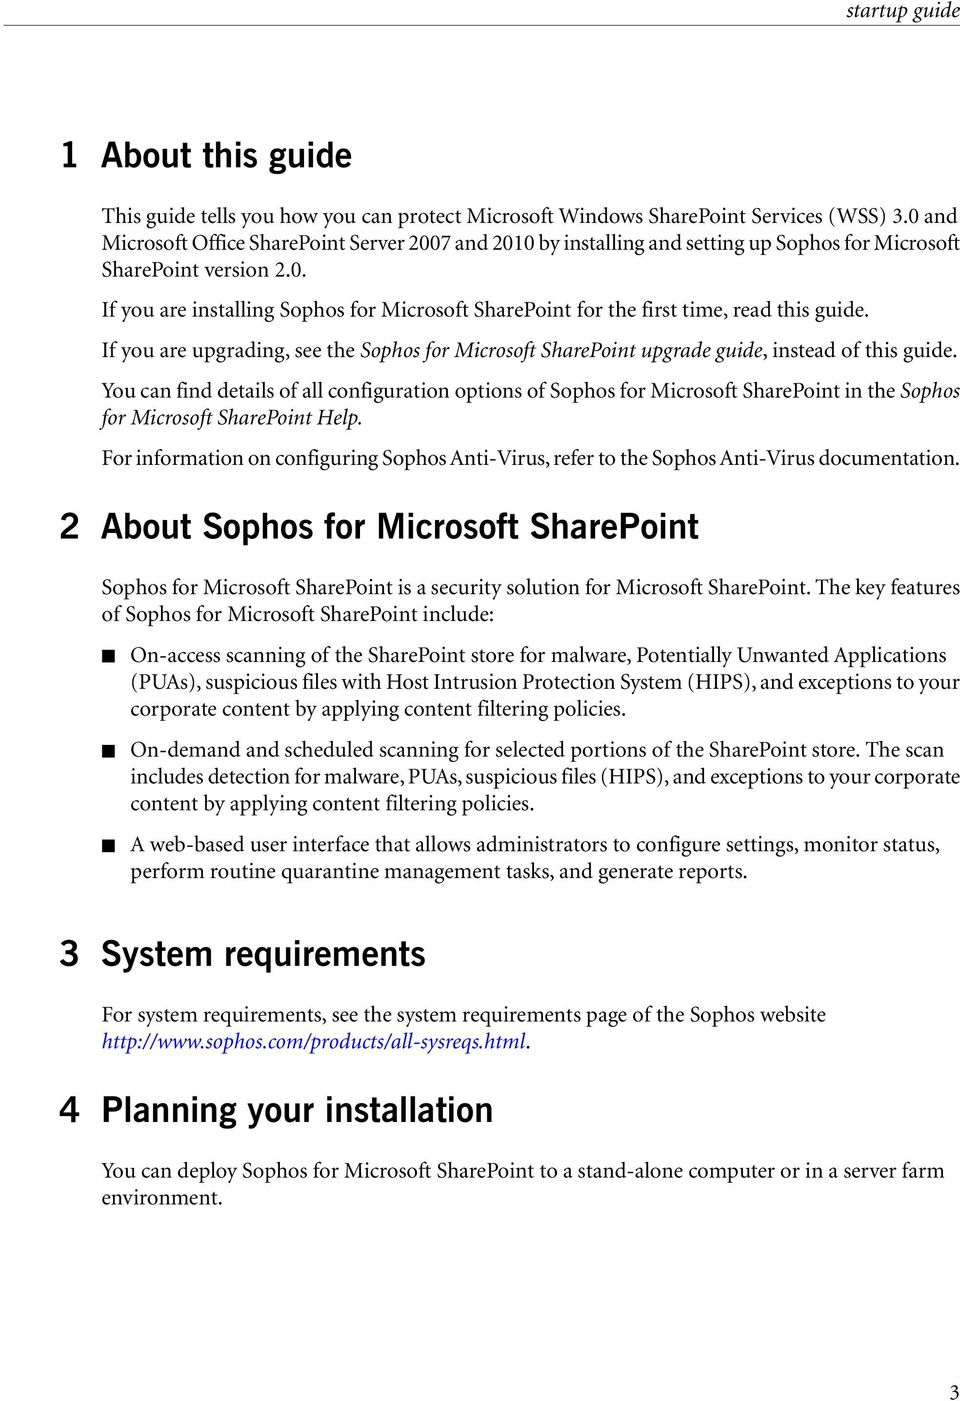 If you are upgrading, see the Sophos for Microsoft SharePoint upgrade guide, instead of this guide.